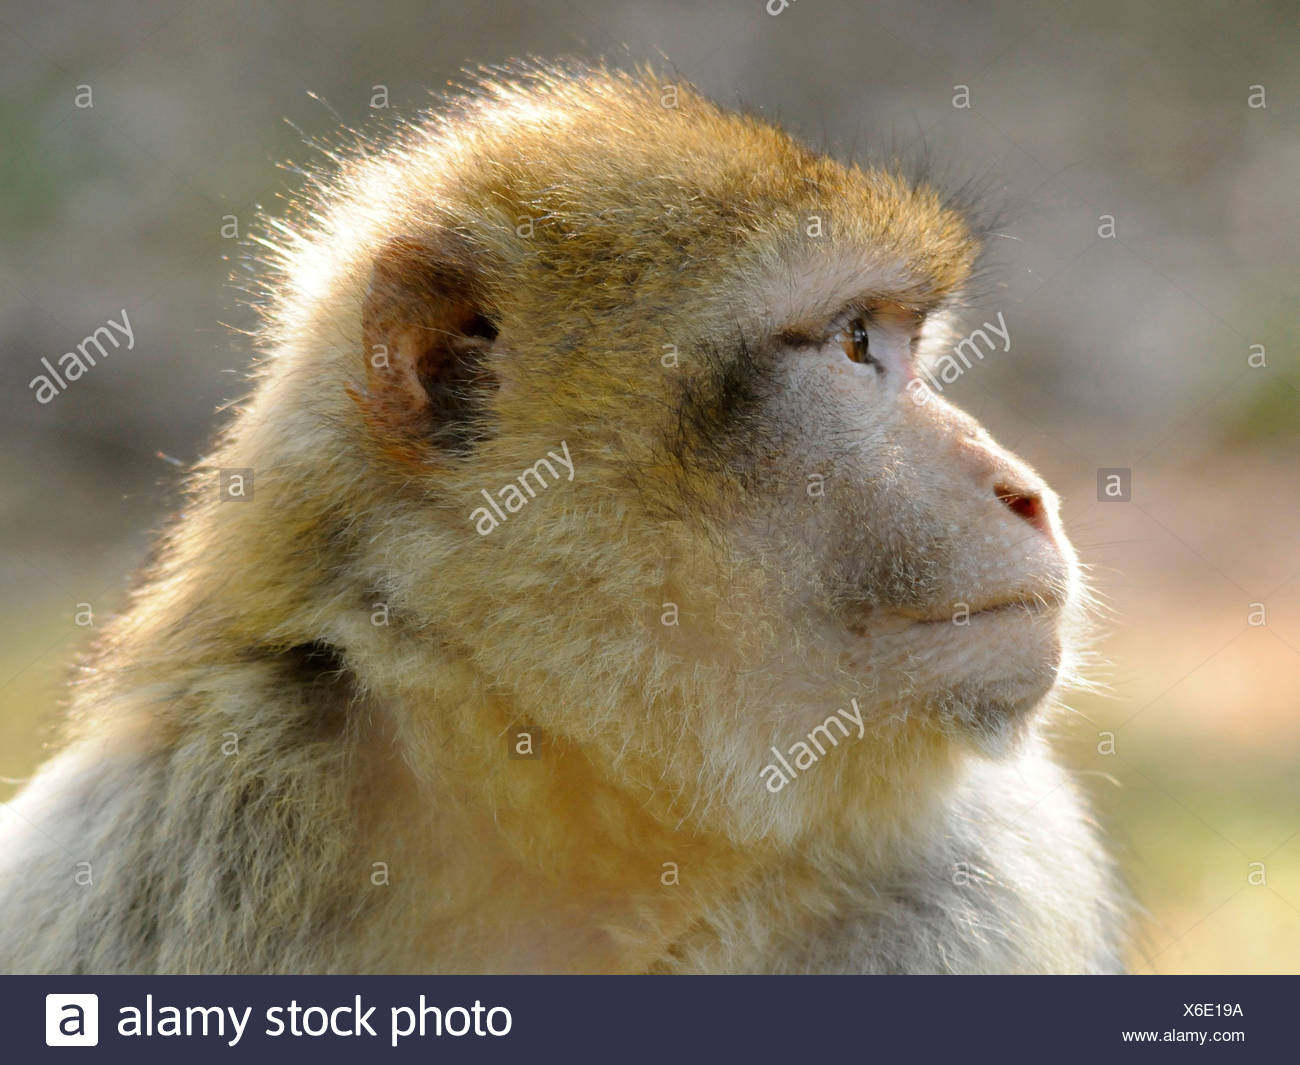 The face of a Barbary Ape also known as Macaque Silvanus. - Stock Image